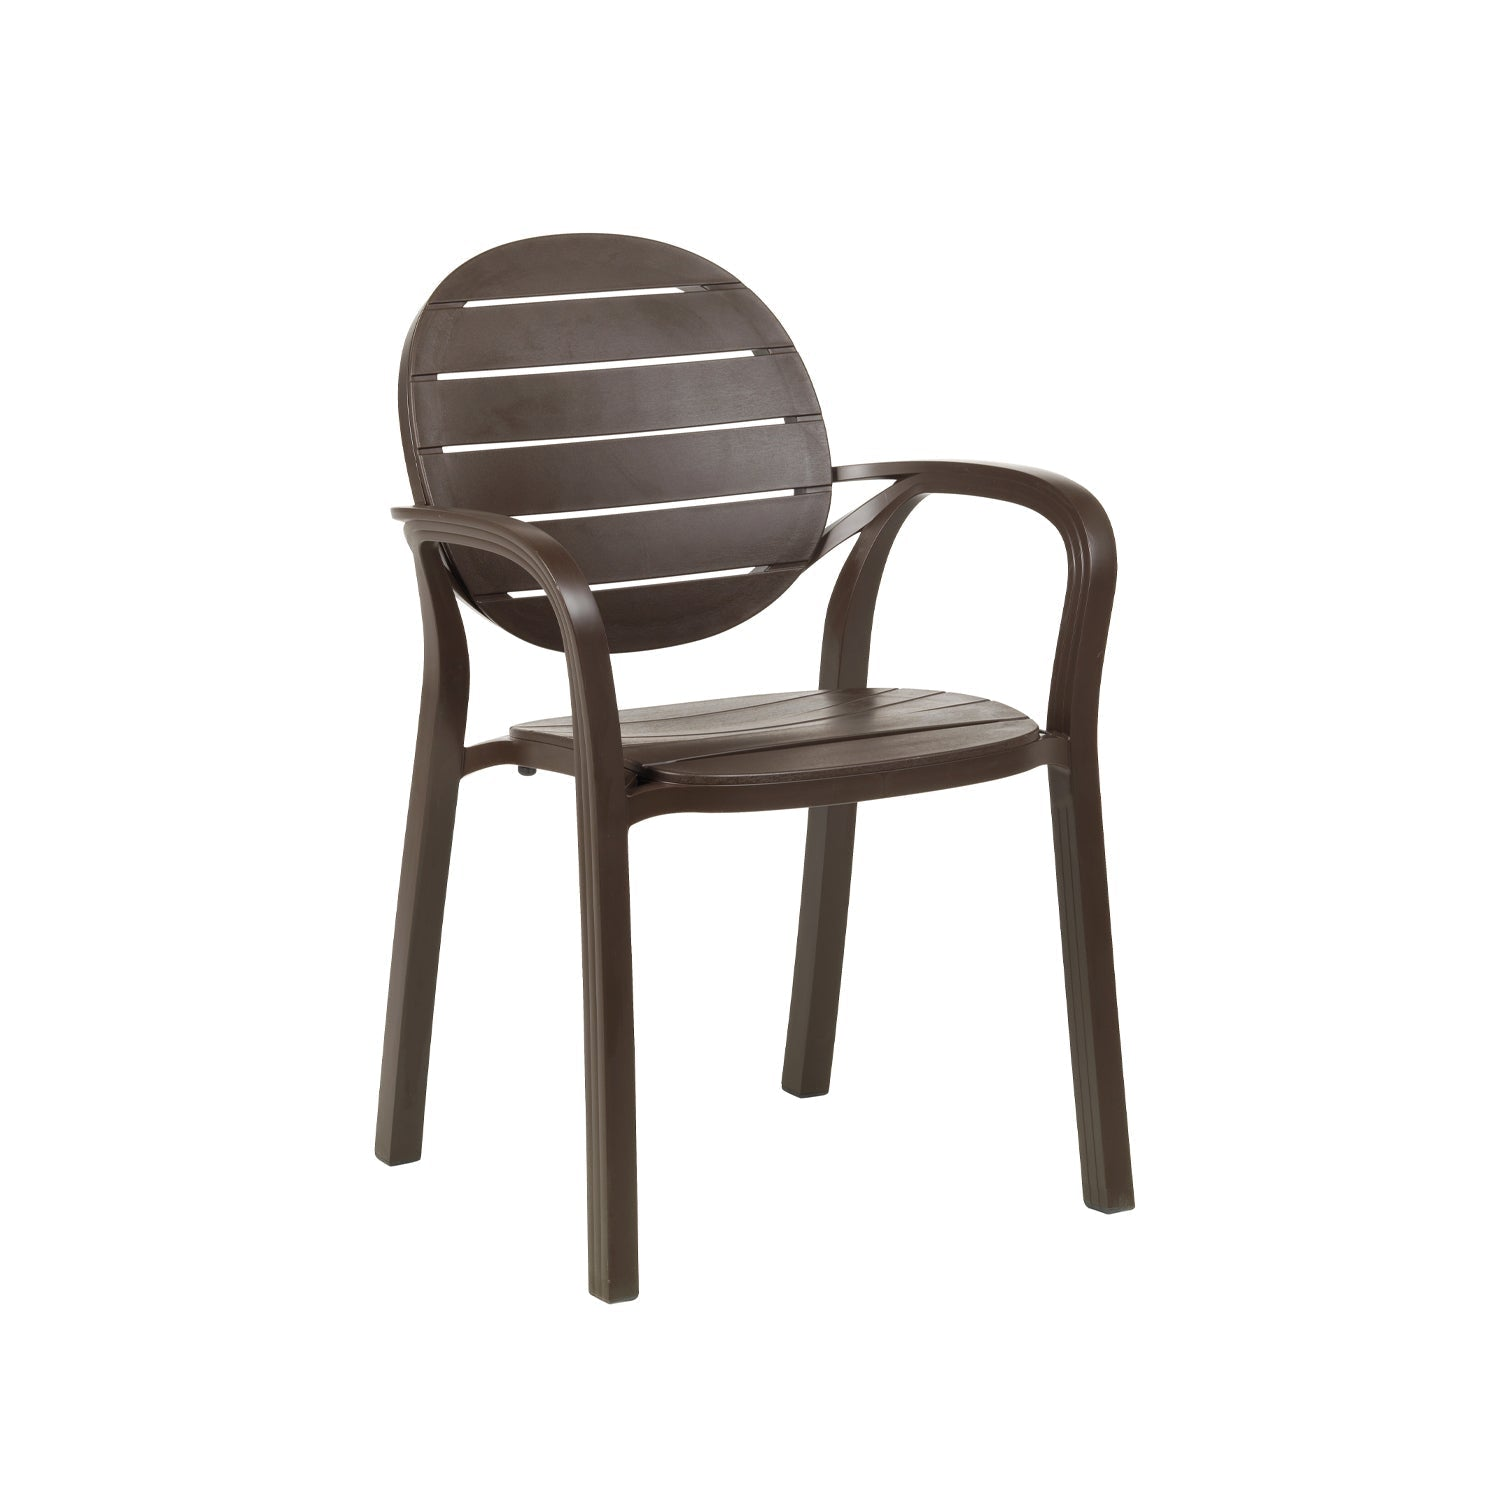 Palma Garden Chair By Nardi - Tobacco